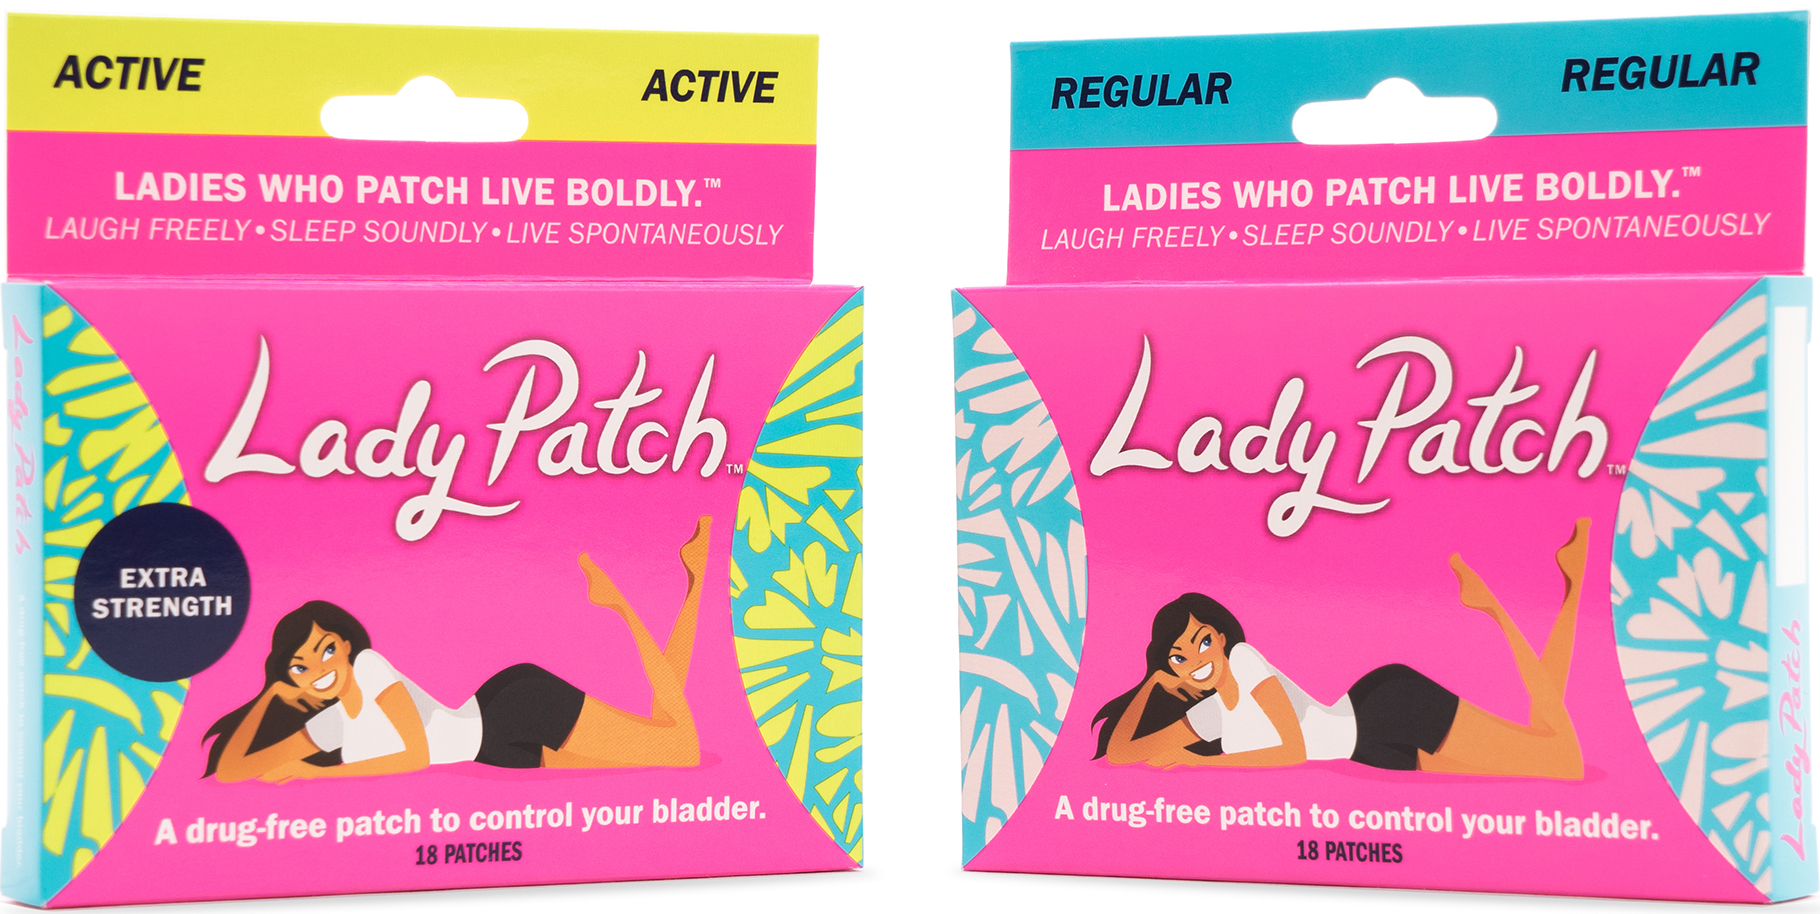 Lady Patch™Regular and Lady Patch™Active